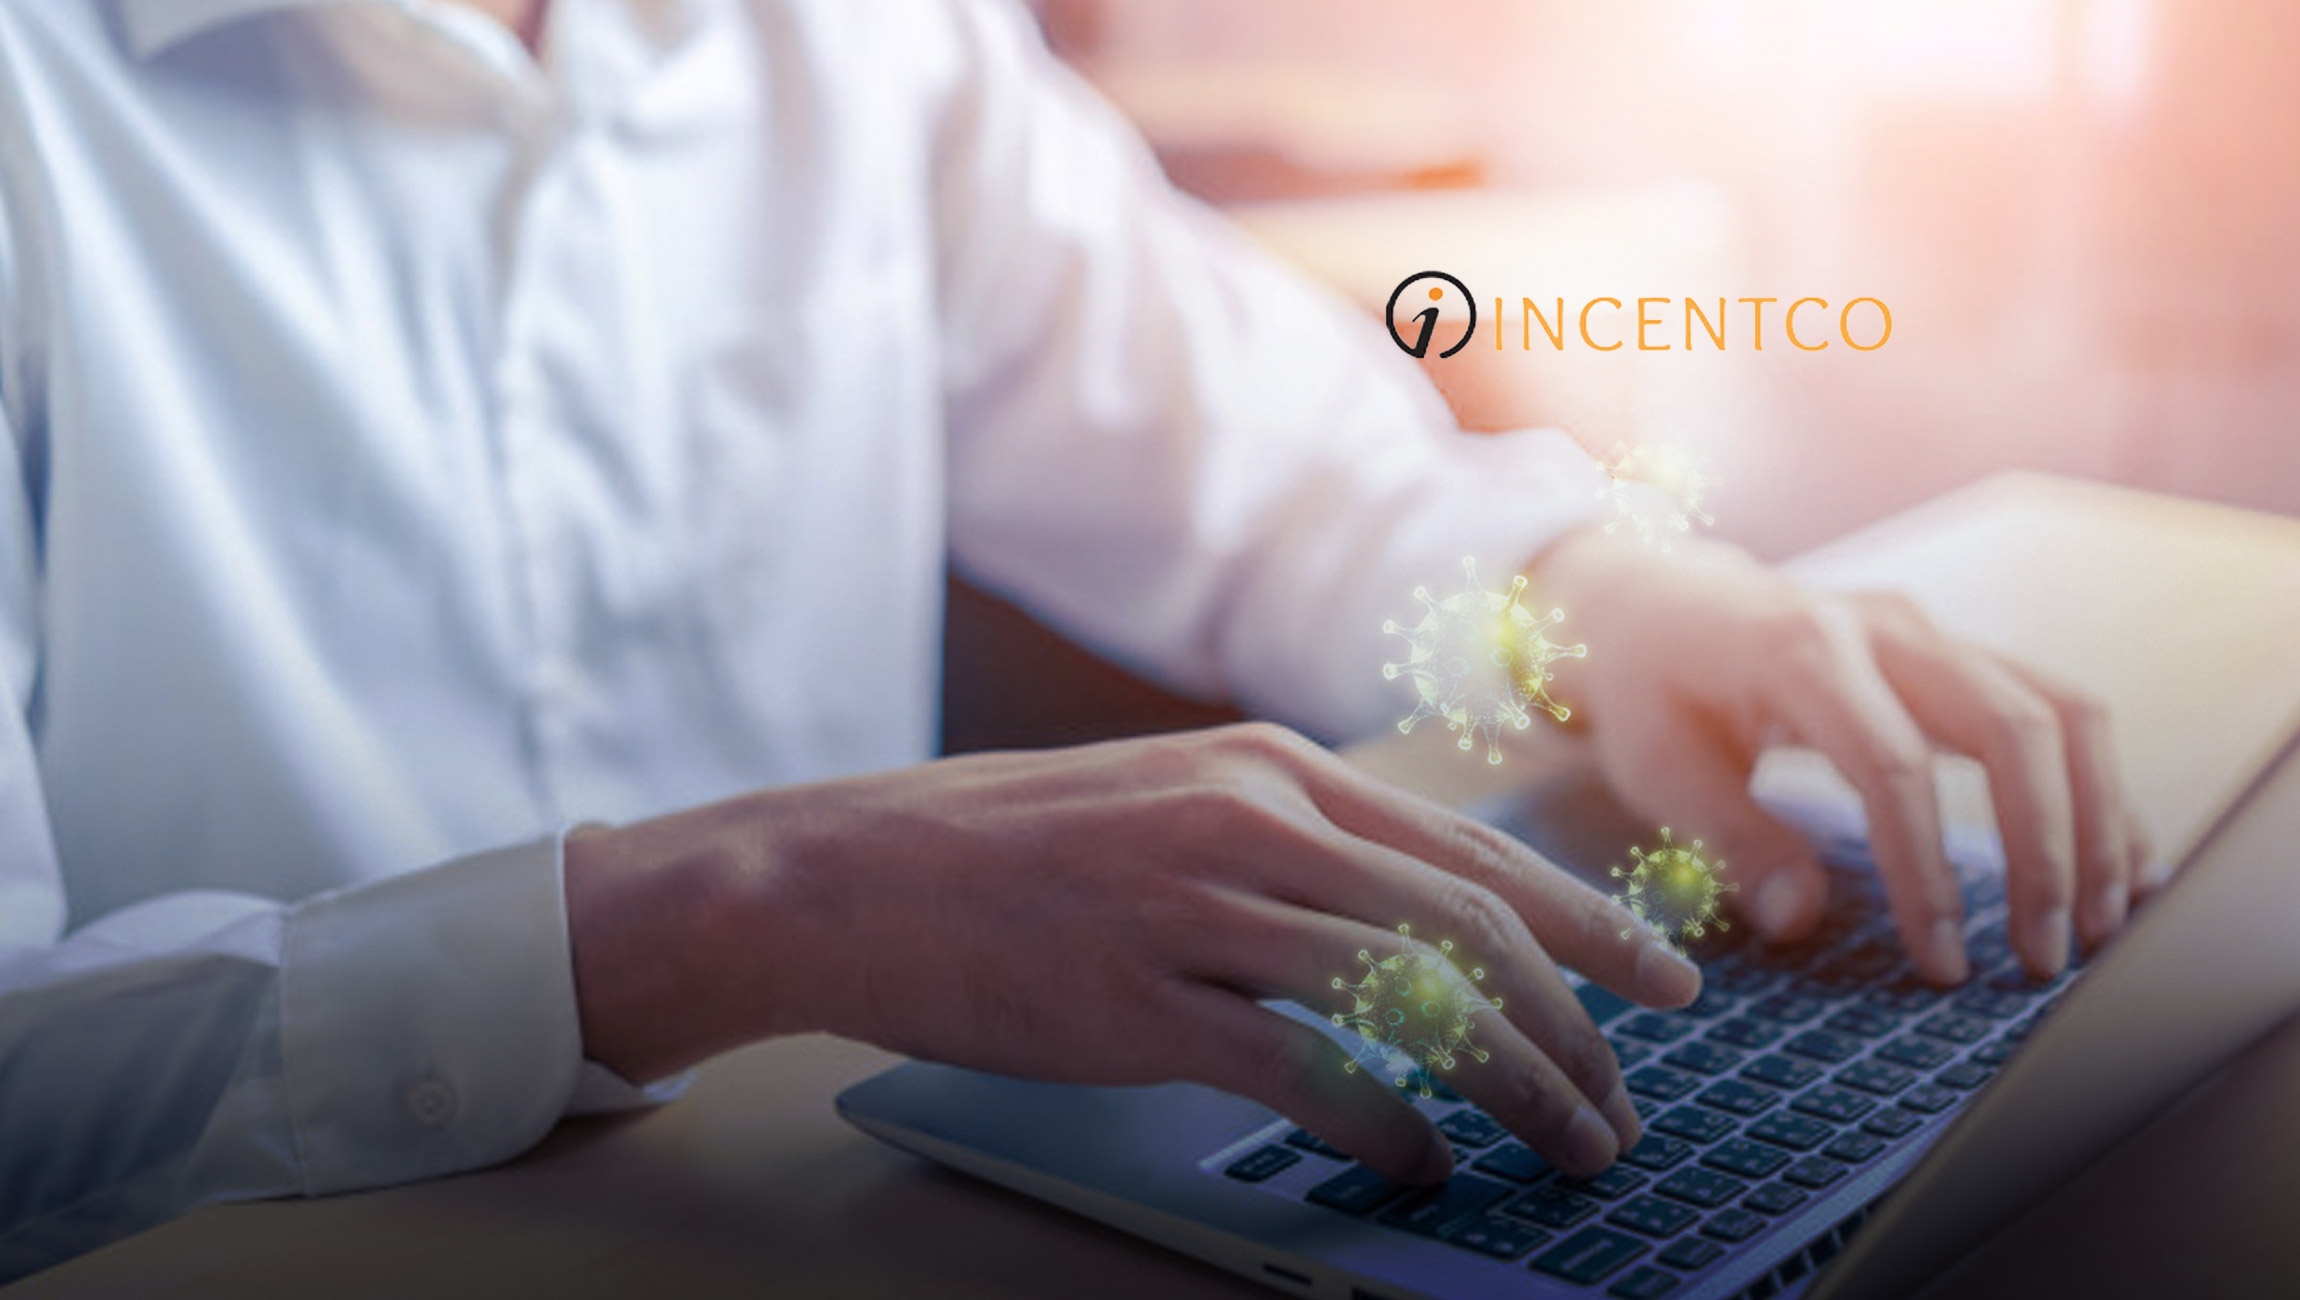 INCENTCO Offers Free Use of Engagement Platform to Reward Multi-Family Work-At-Home Teams During Coronavirus Pandemic